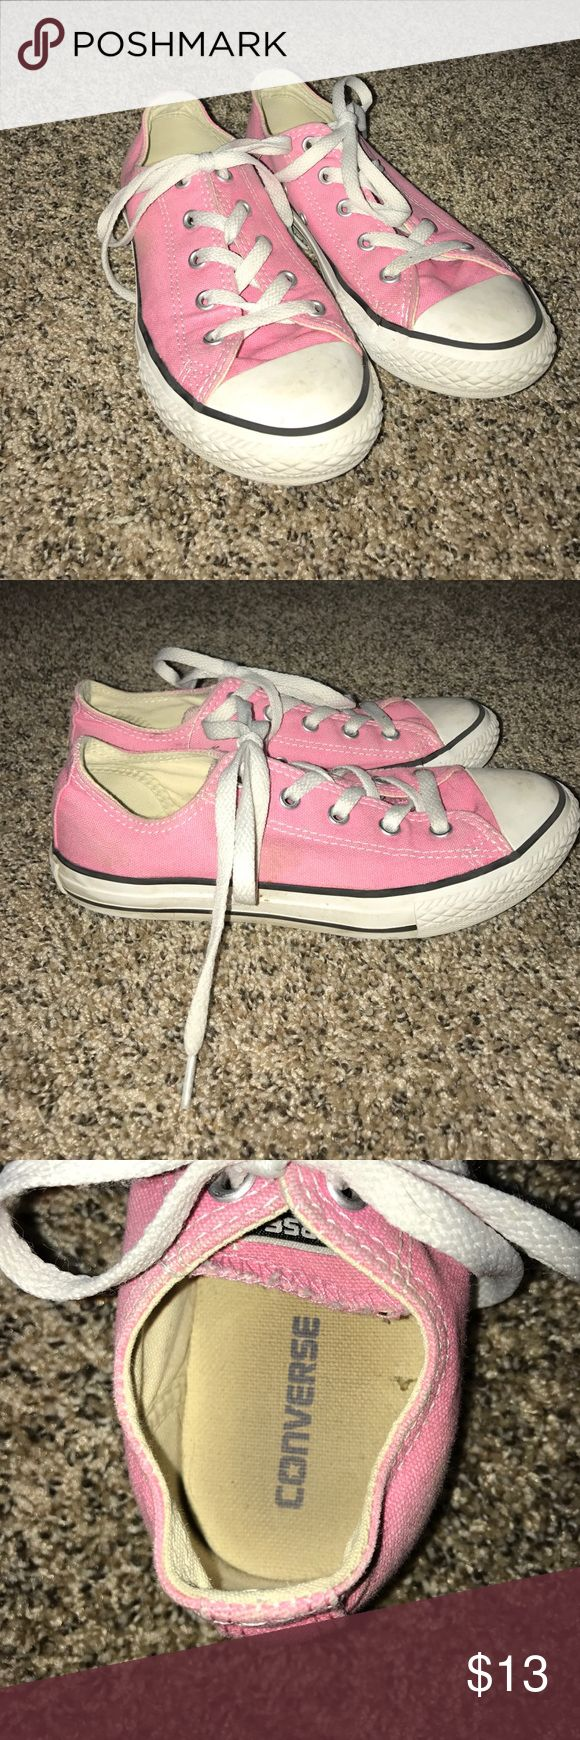 Converse pink kids shoes Pink white and black converse shoes for kids not new but not worn a lot Converse Shoes Sneakers